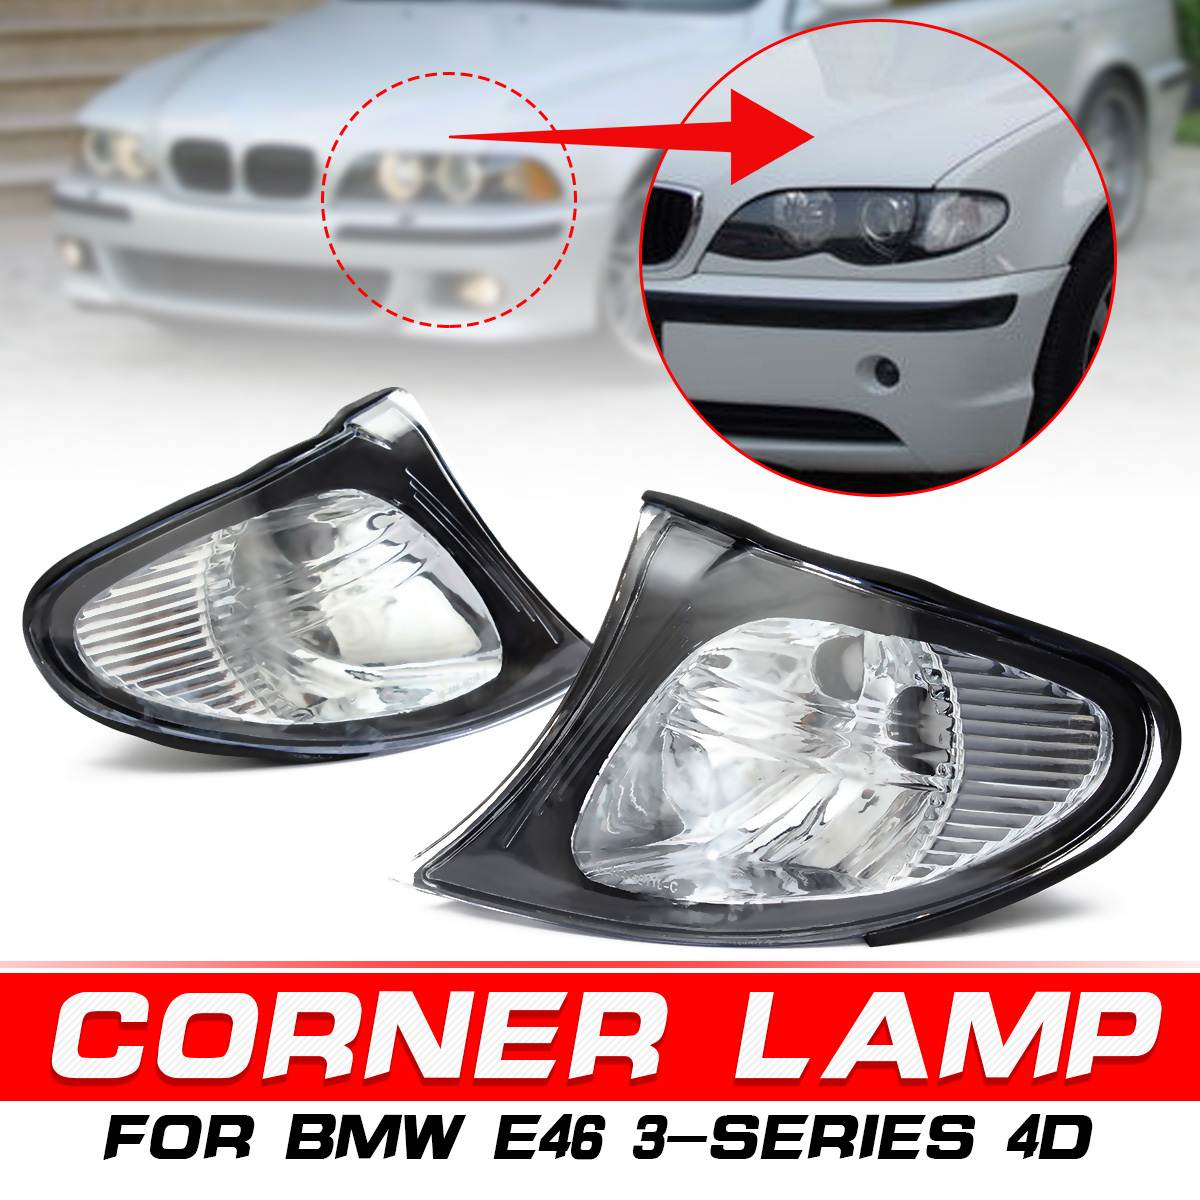 1-Pair Ford Mustang Replacement Corner Light Unit